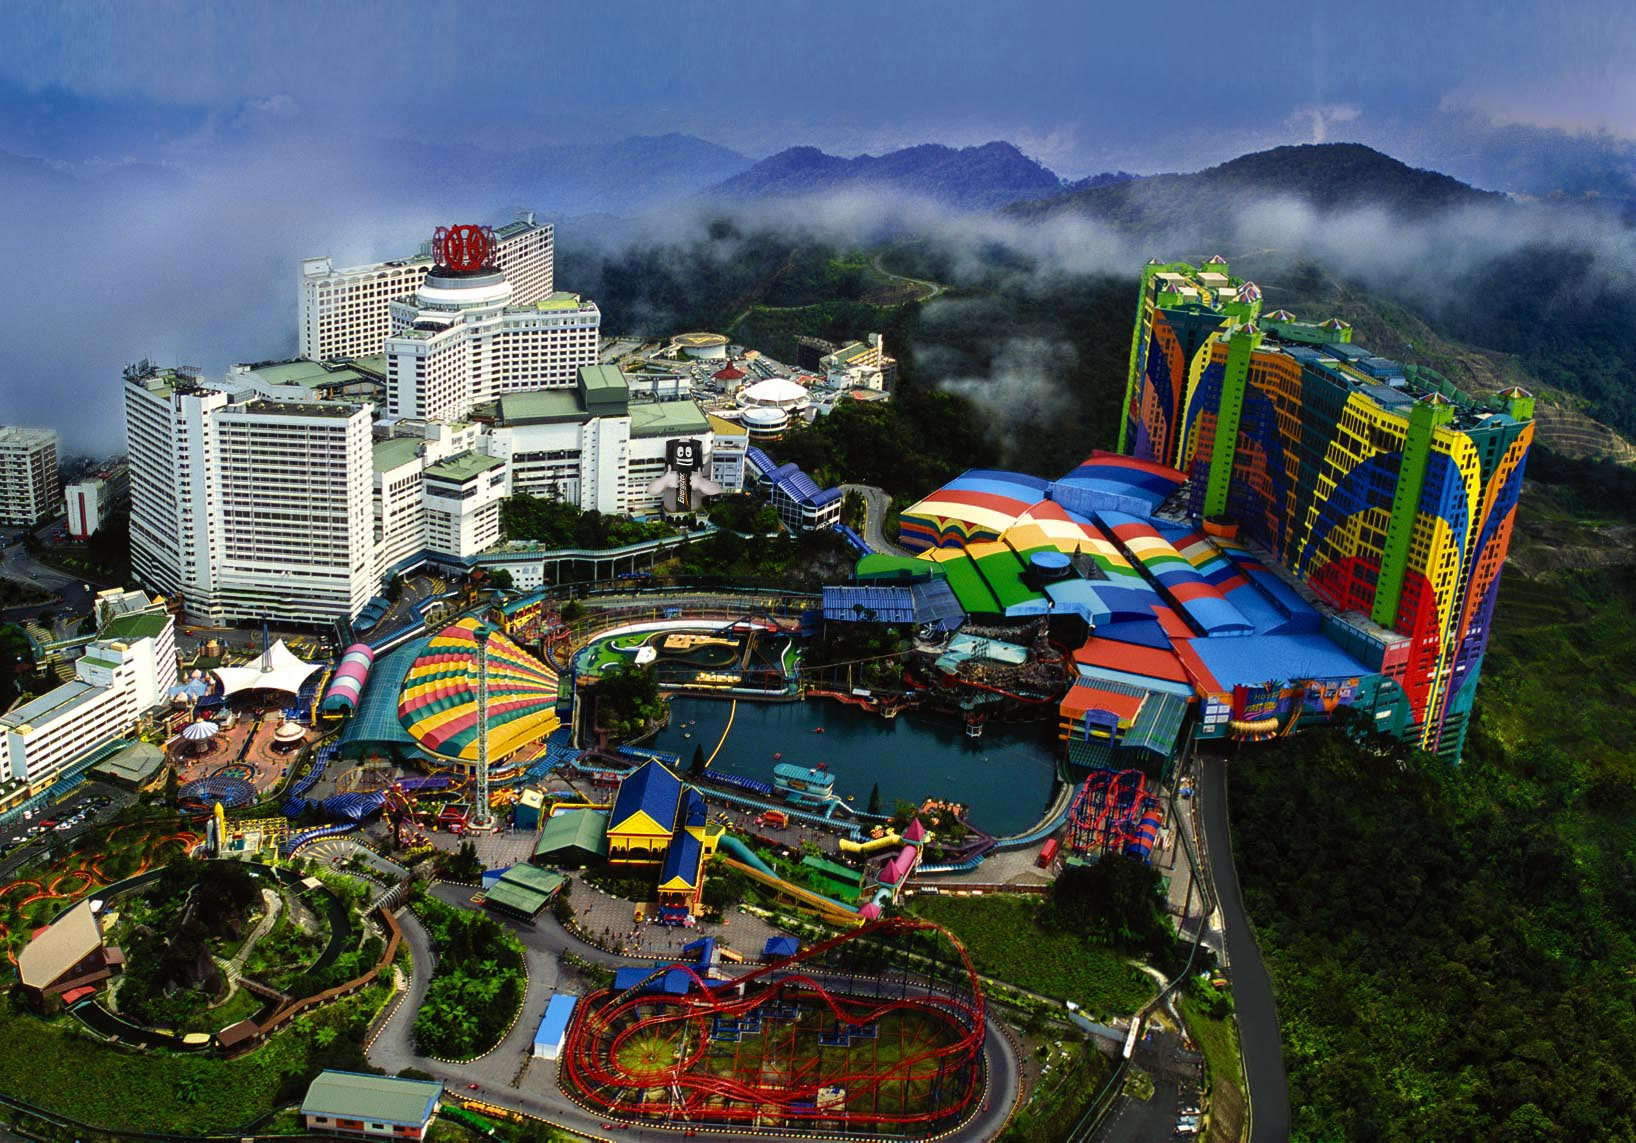 Travel Guide to Genting Highlands